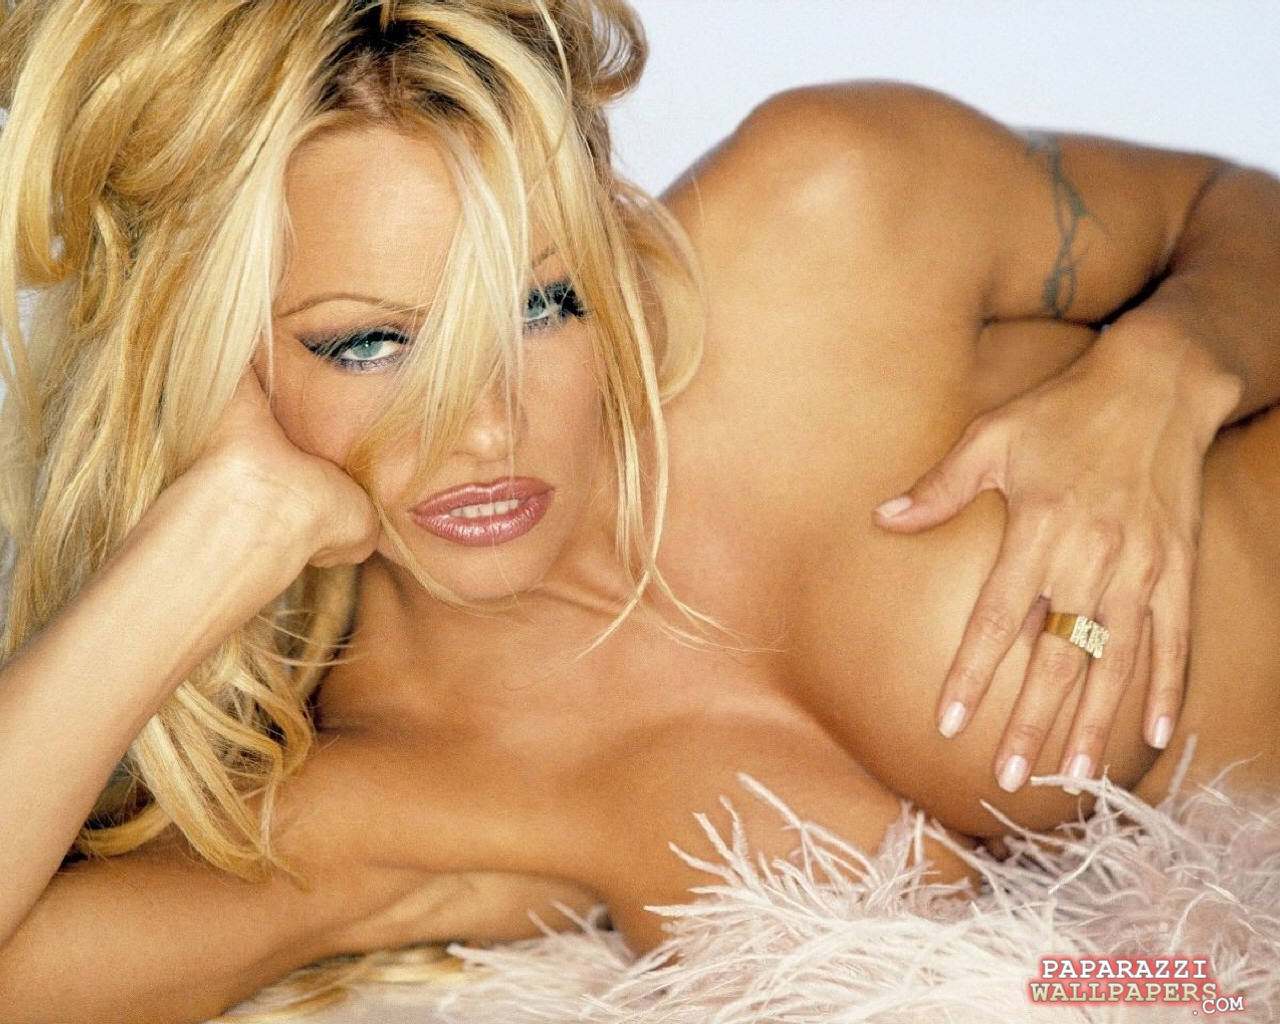 pamela anderson wallpapers 067